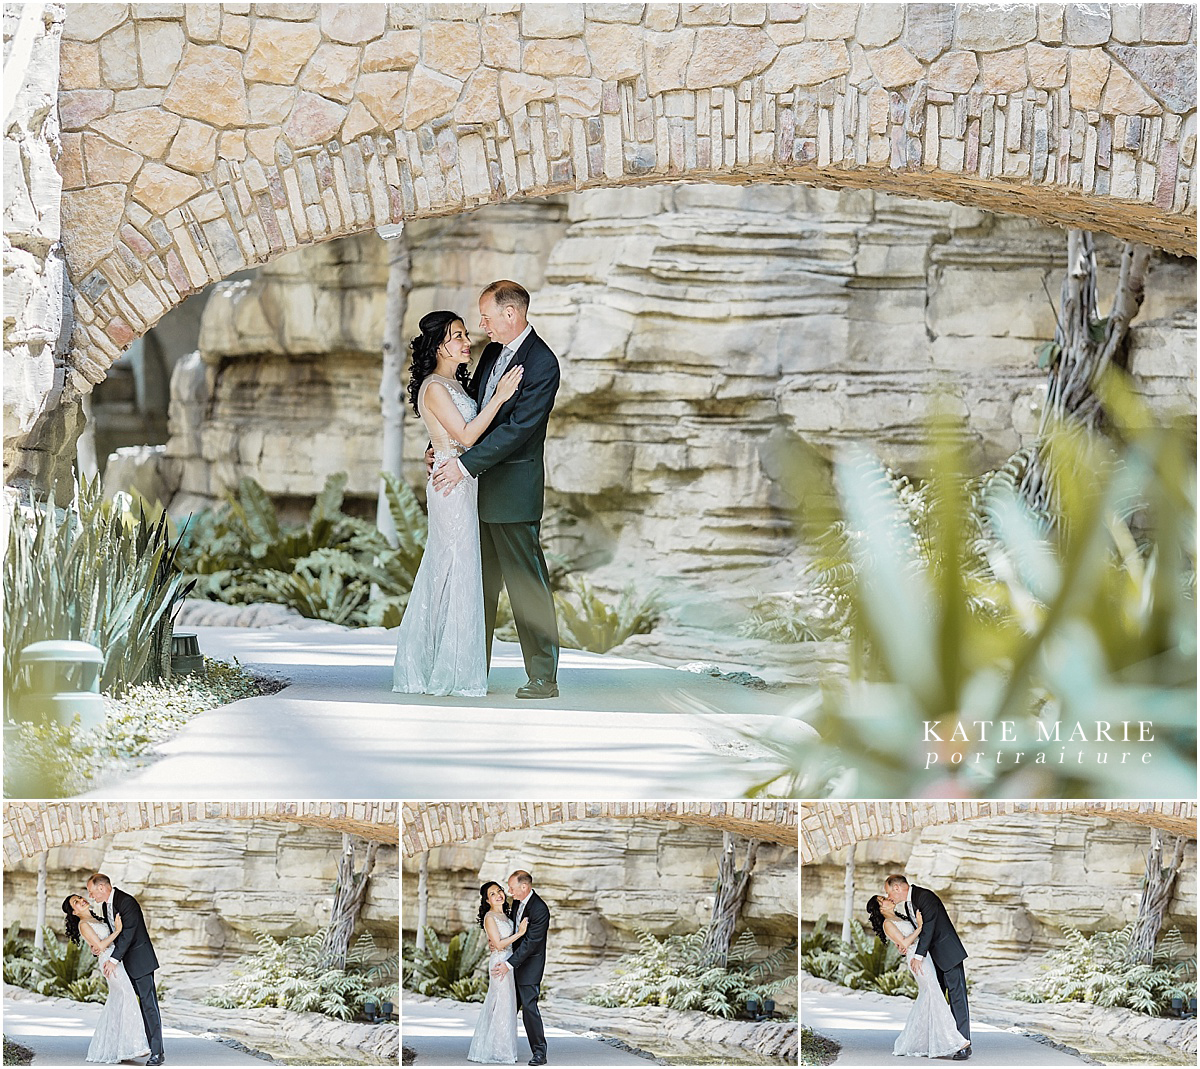 Dallas_Wedding_Photographer_Flower_Mound_Portrait_Photographer_Kate_Marie_Portraiture_Uyen&Gordon_GaylordTexan_4.jpg